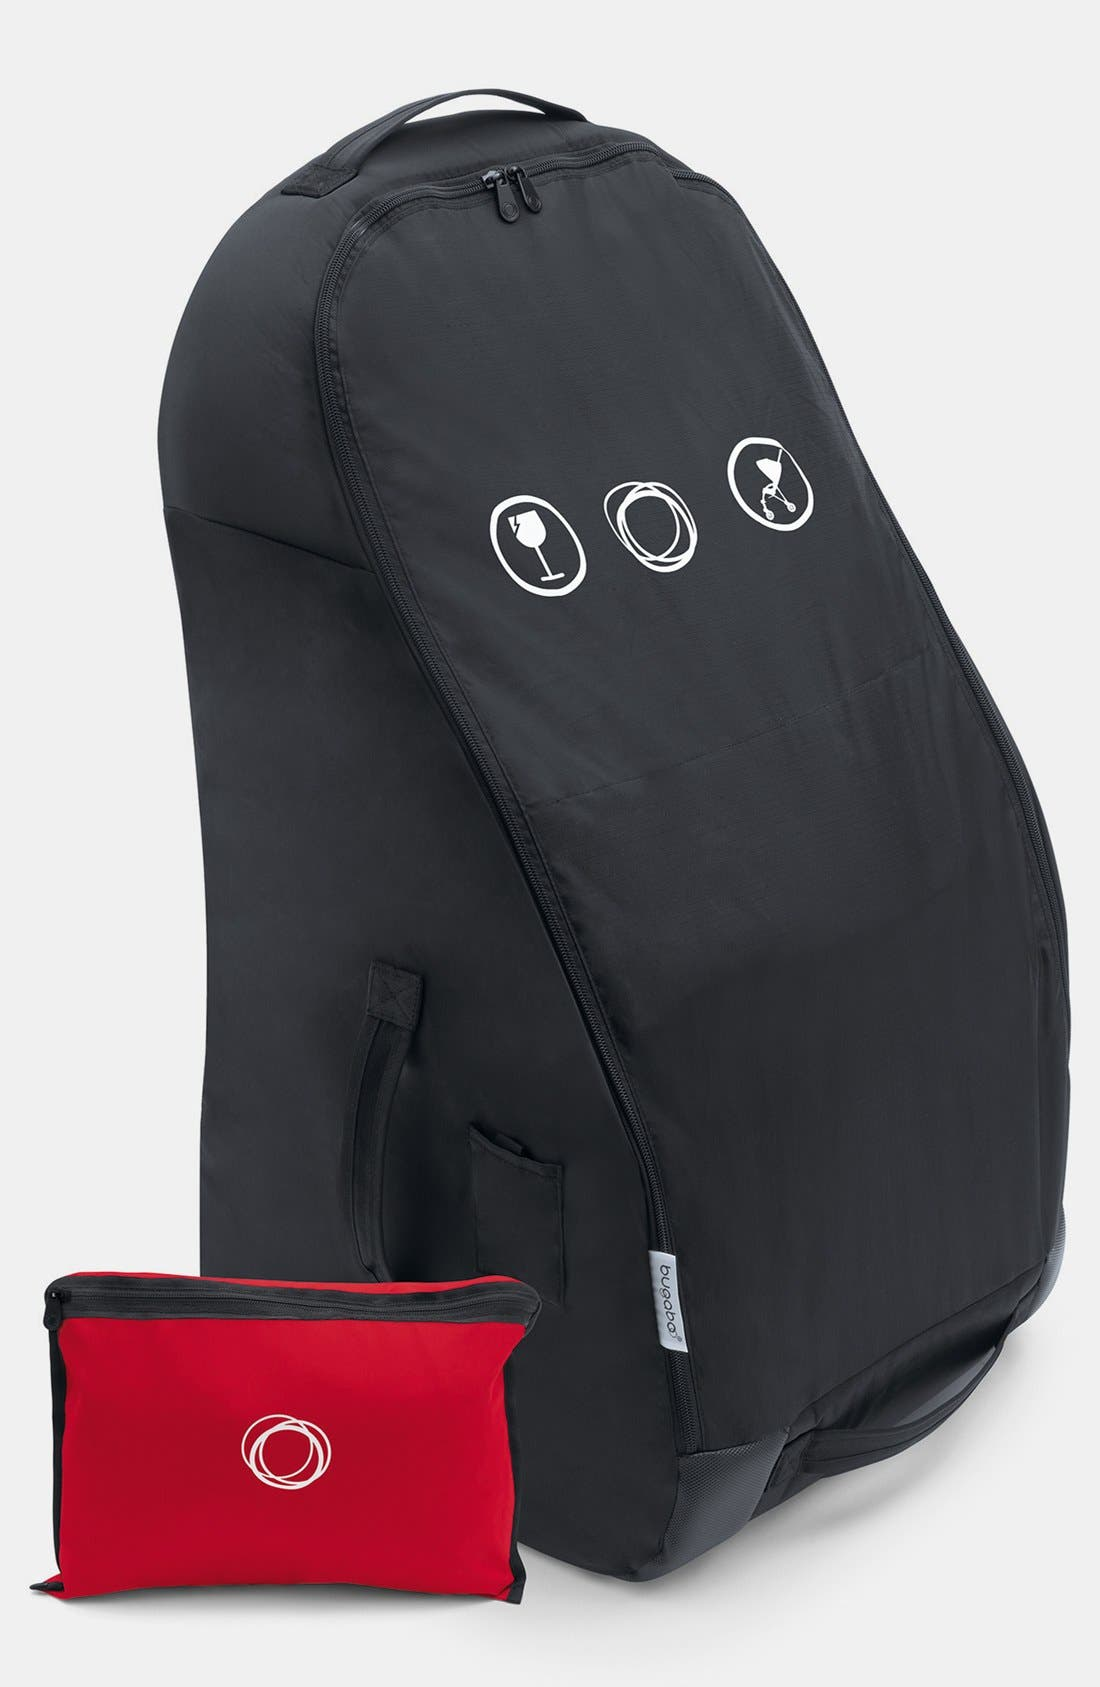 Main Image - Bugaboo 'Bee' Compact Stroller Transport Bag